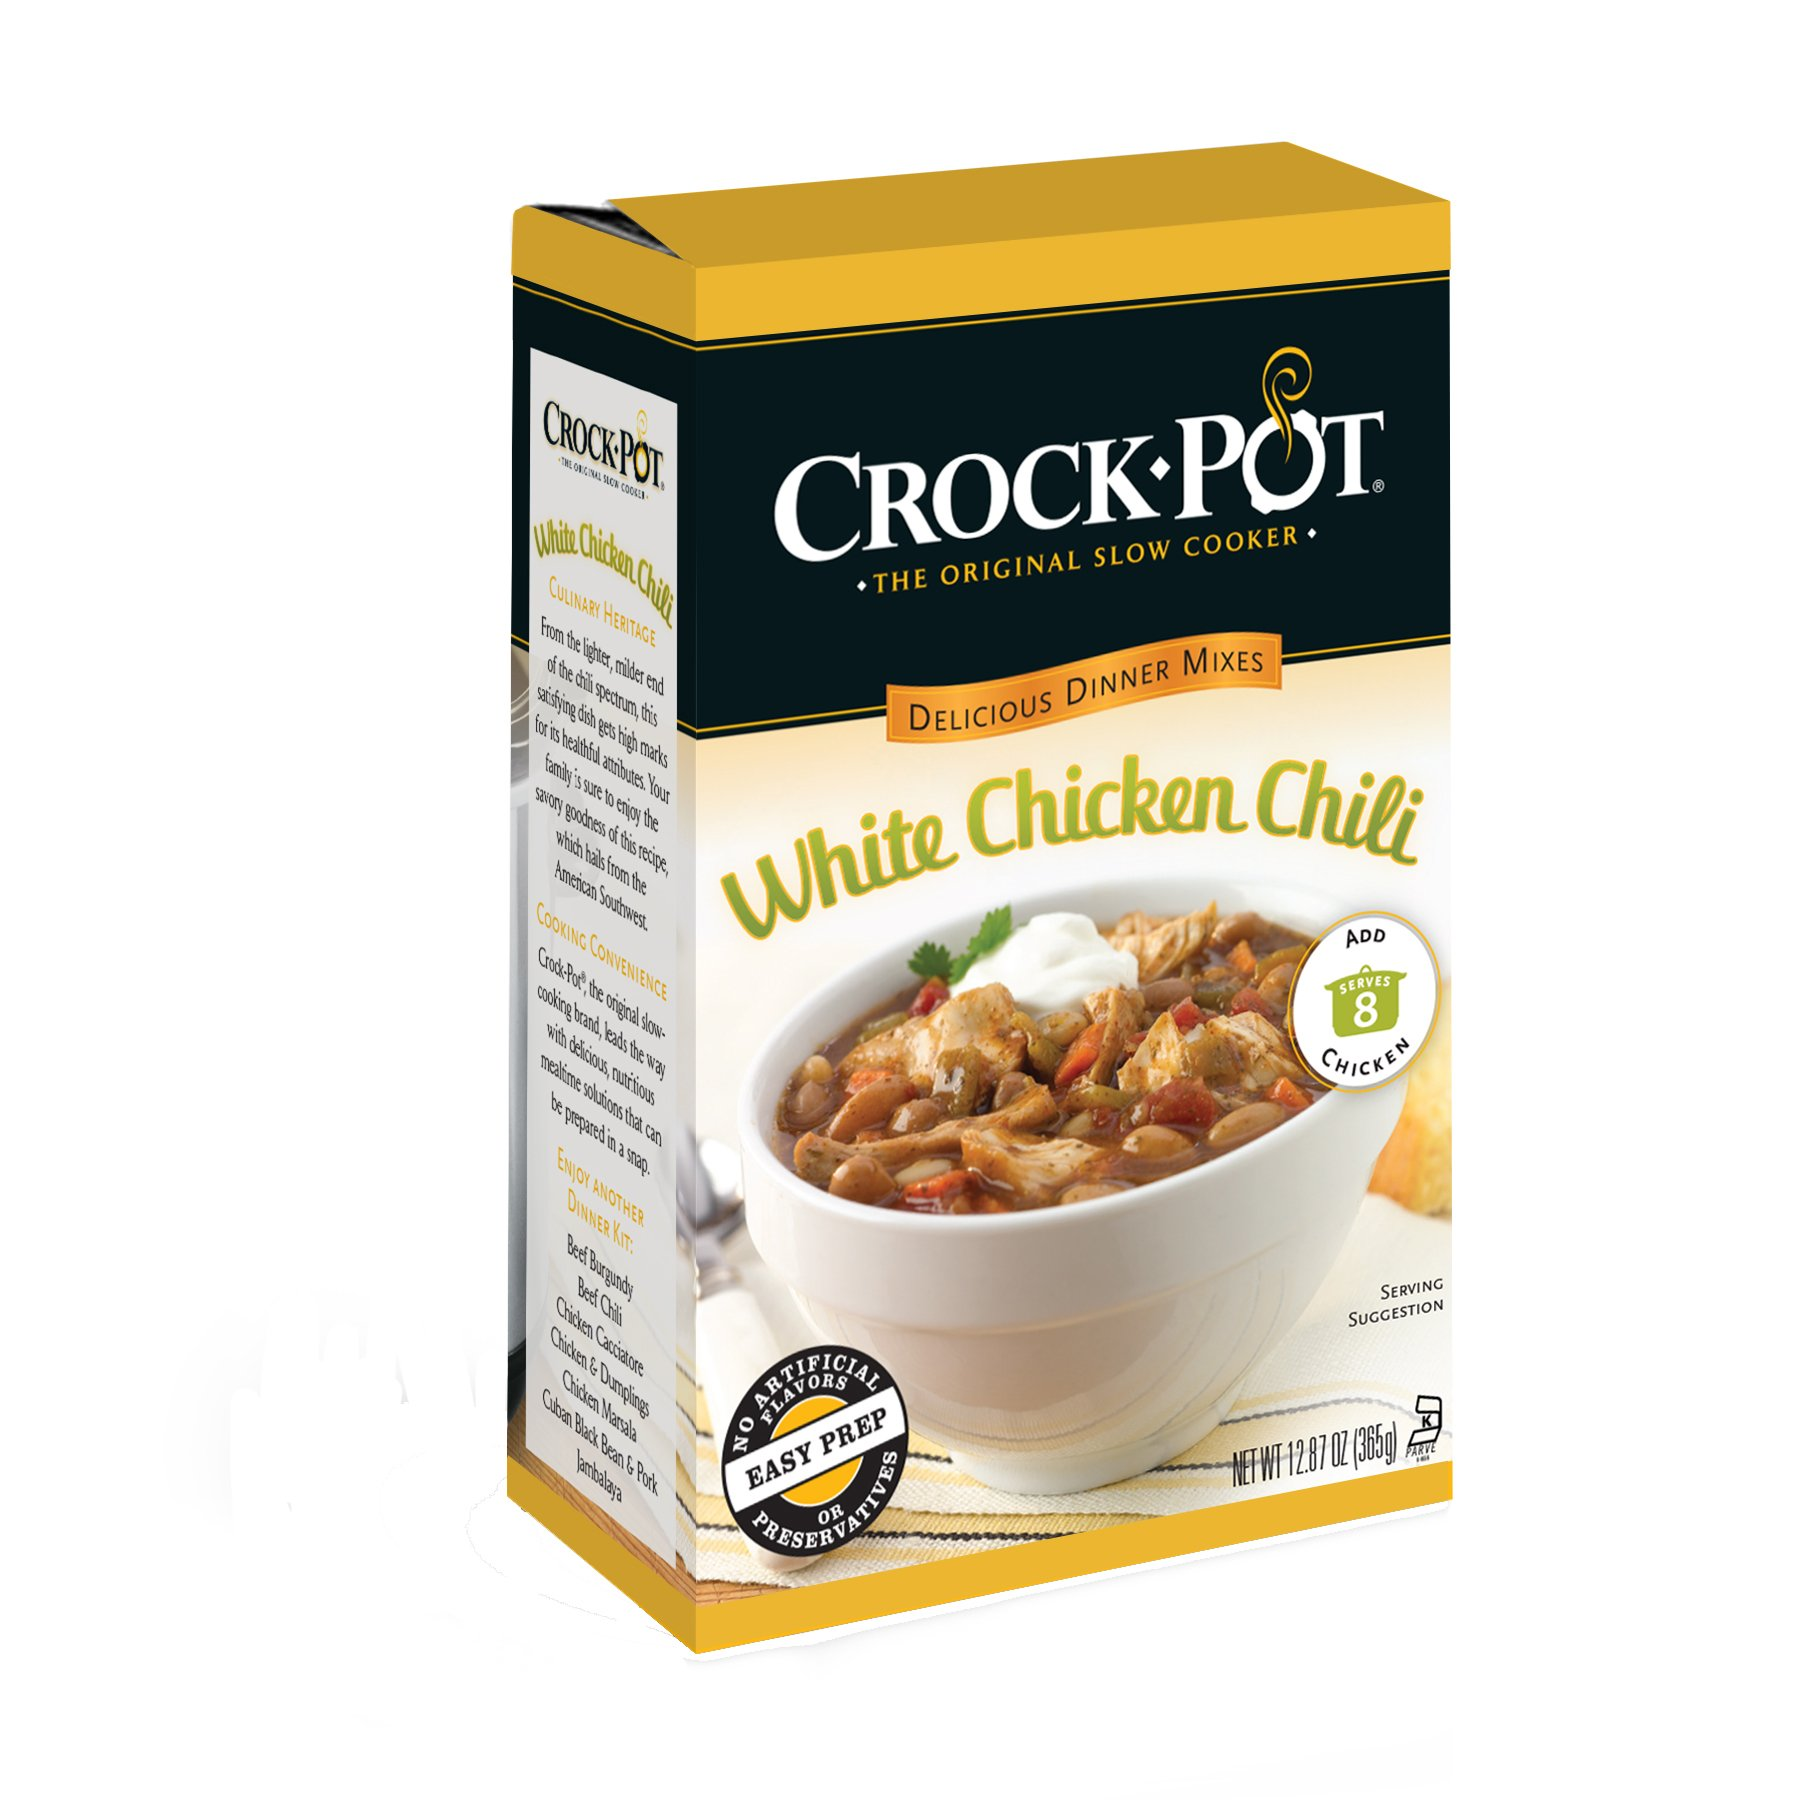 Crock-Pot Delicious Dinners, White Chicken Chili, 12.87 Ounce (Pack of 6) by Crock-Pot (Image #1)